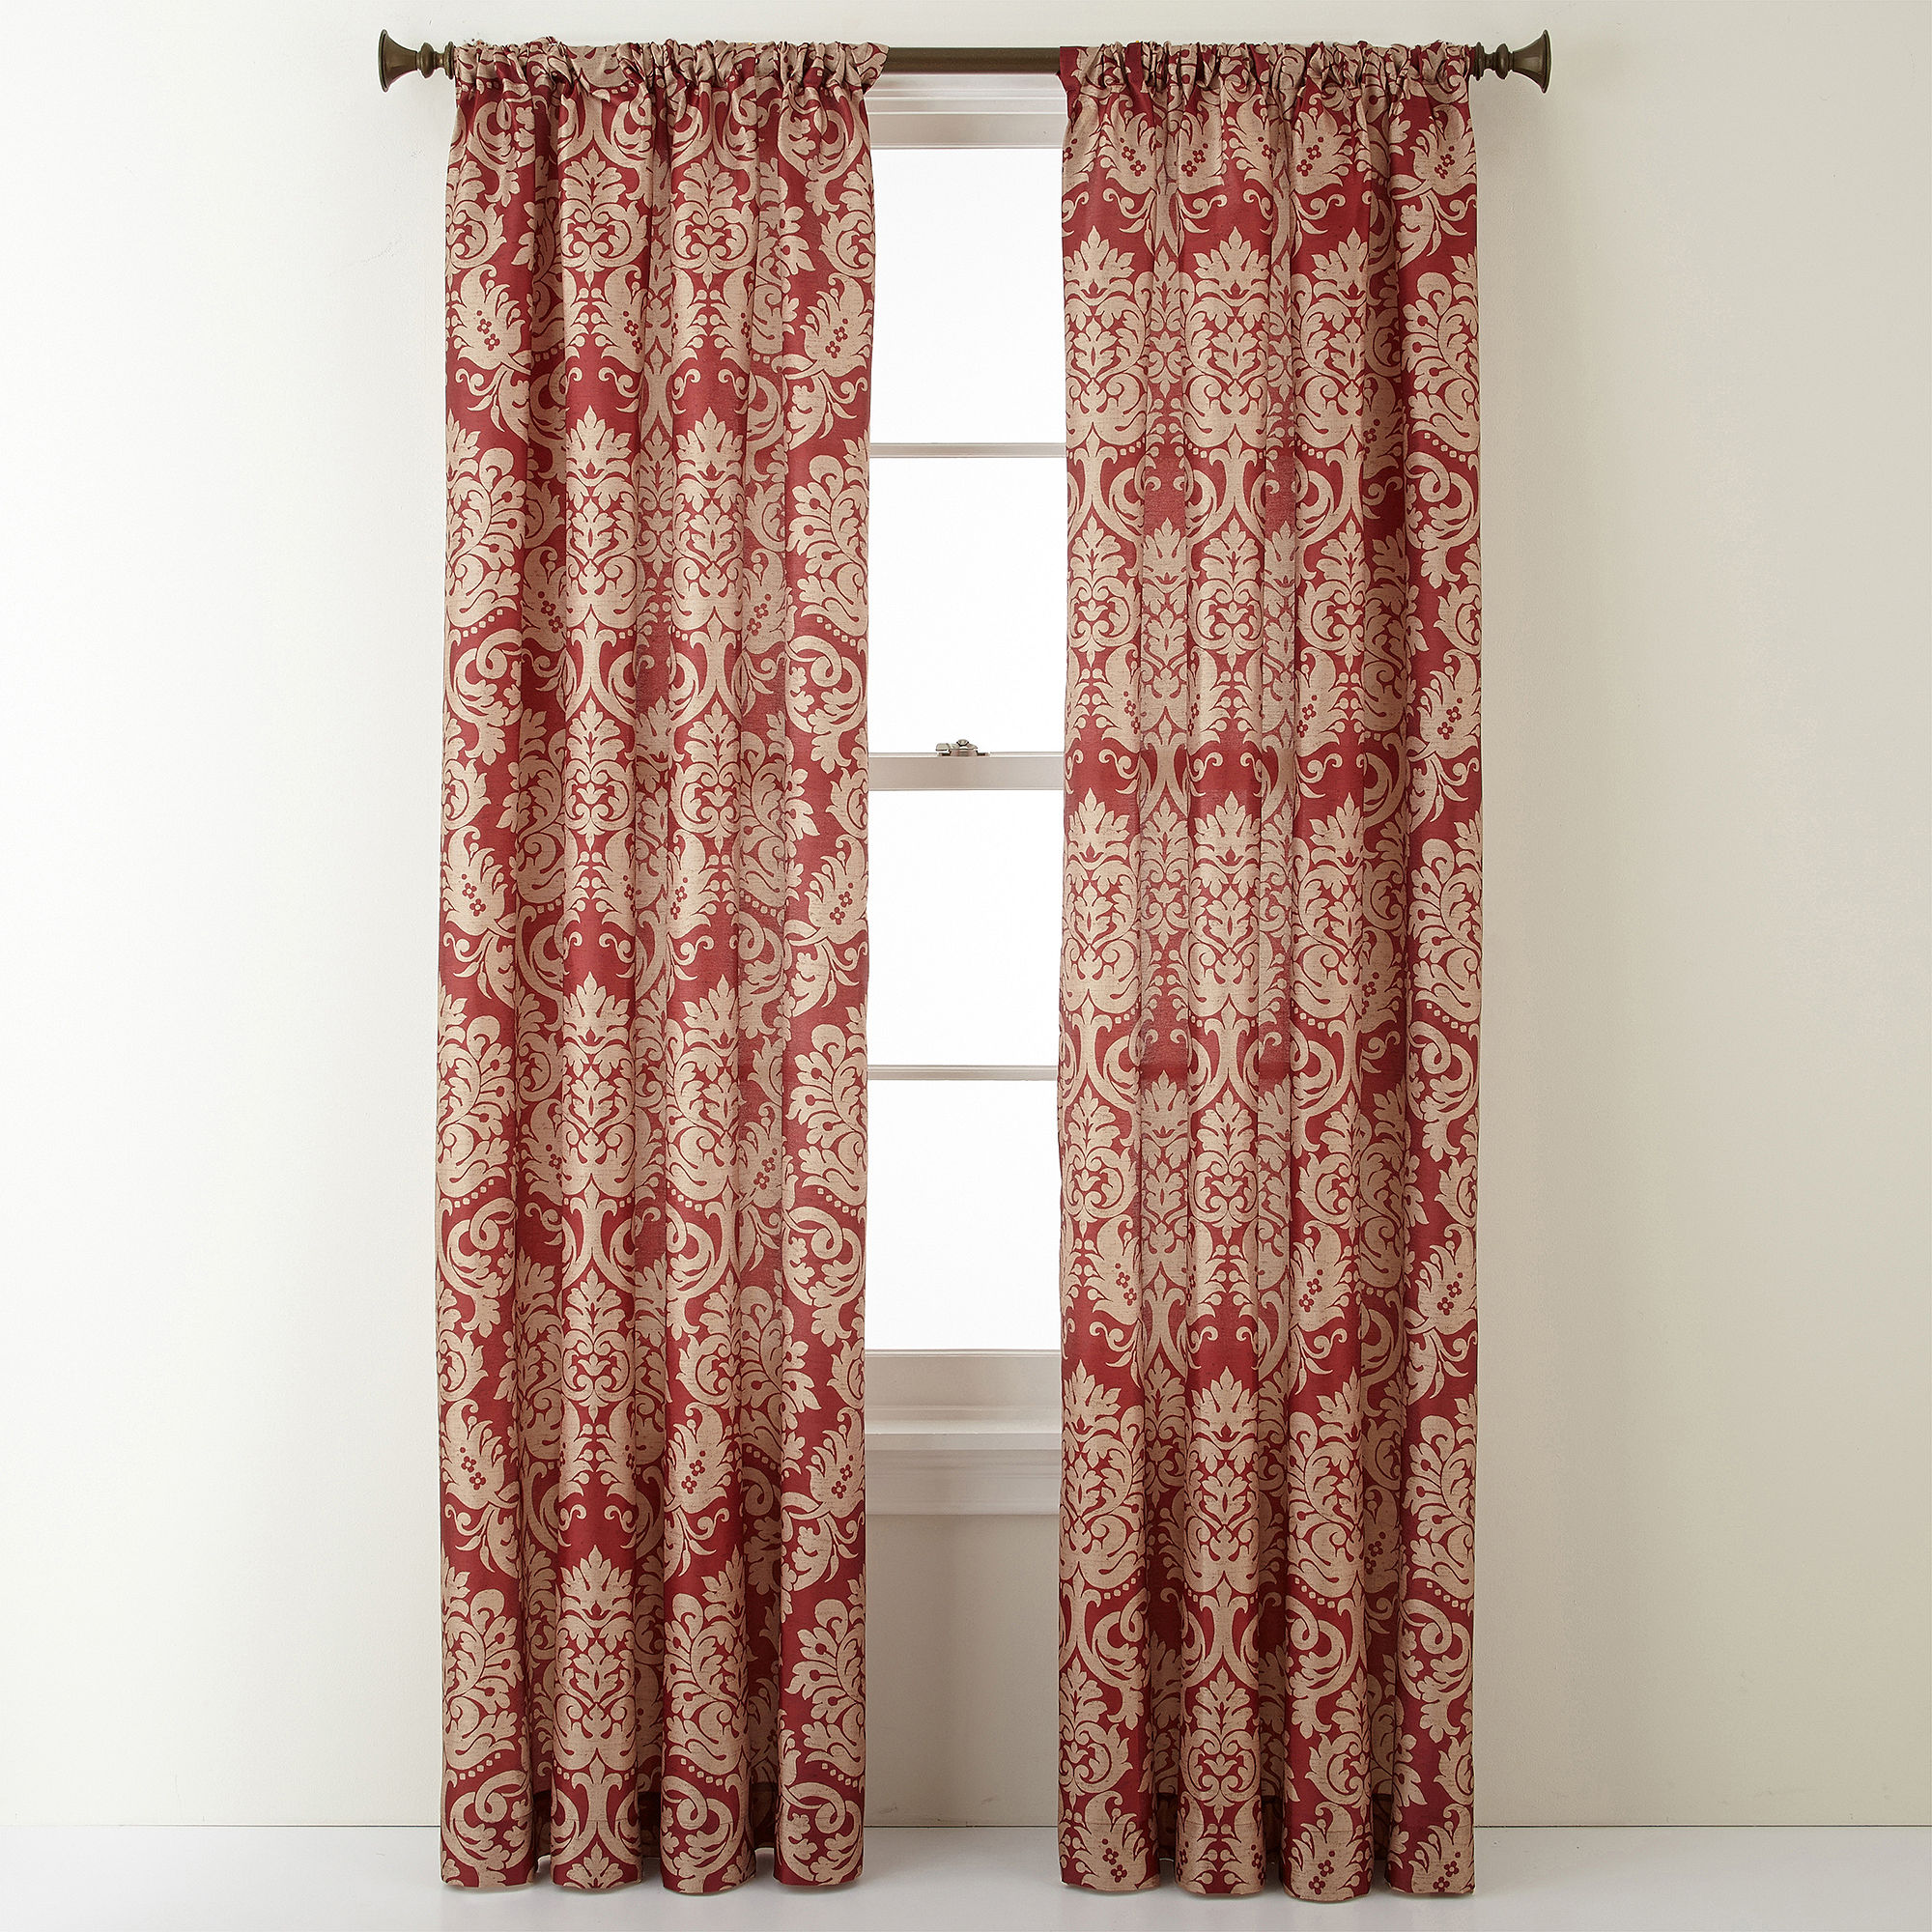 Upc 073104910018 Royal Velvet Camden Rod Pocket Curtain